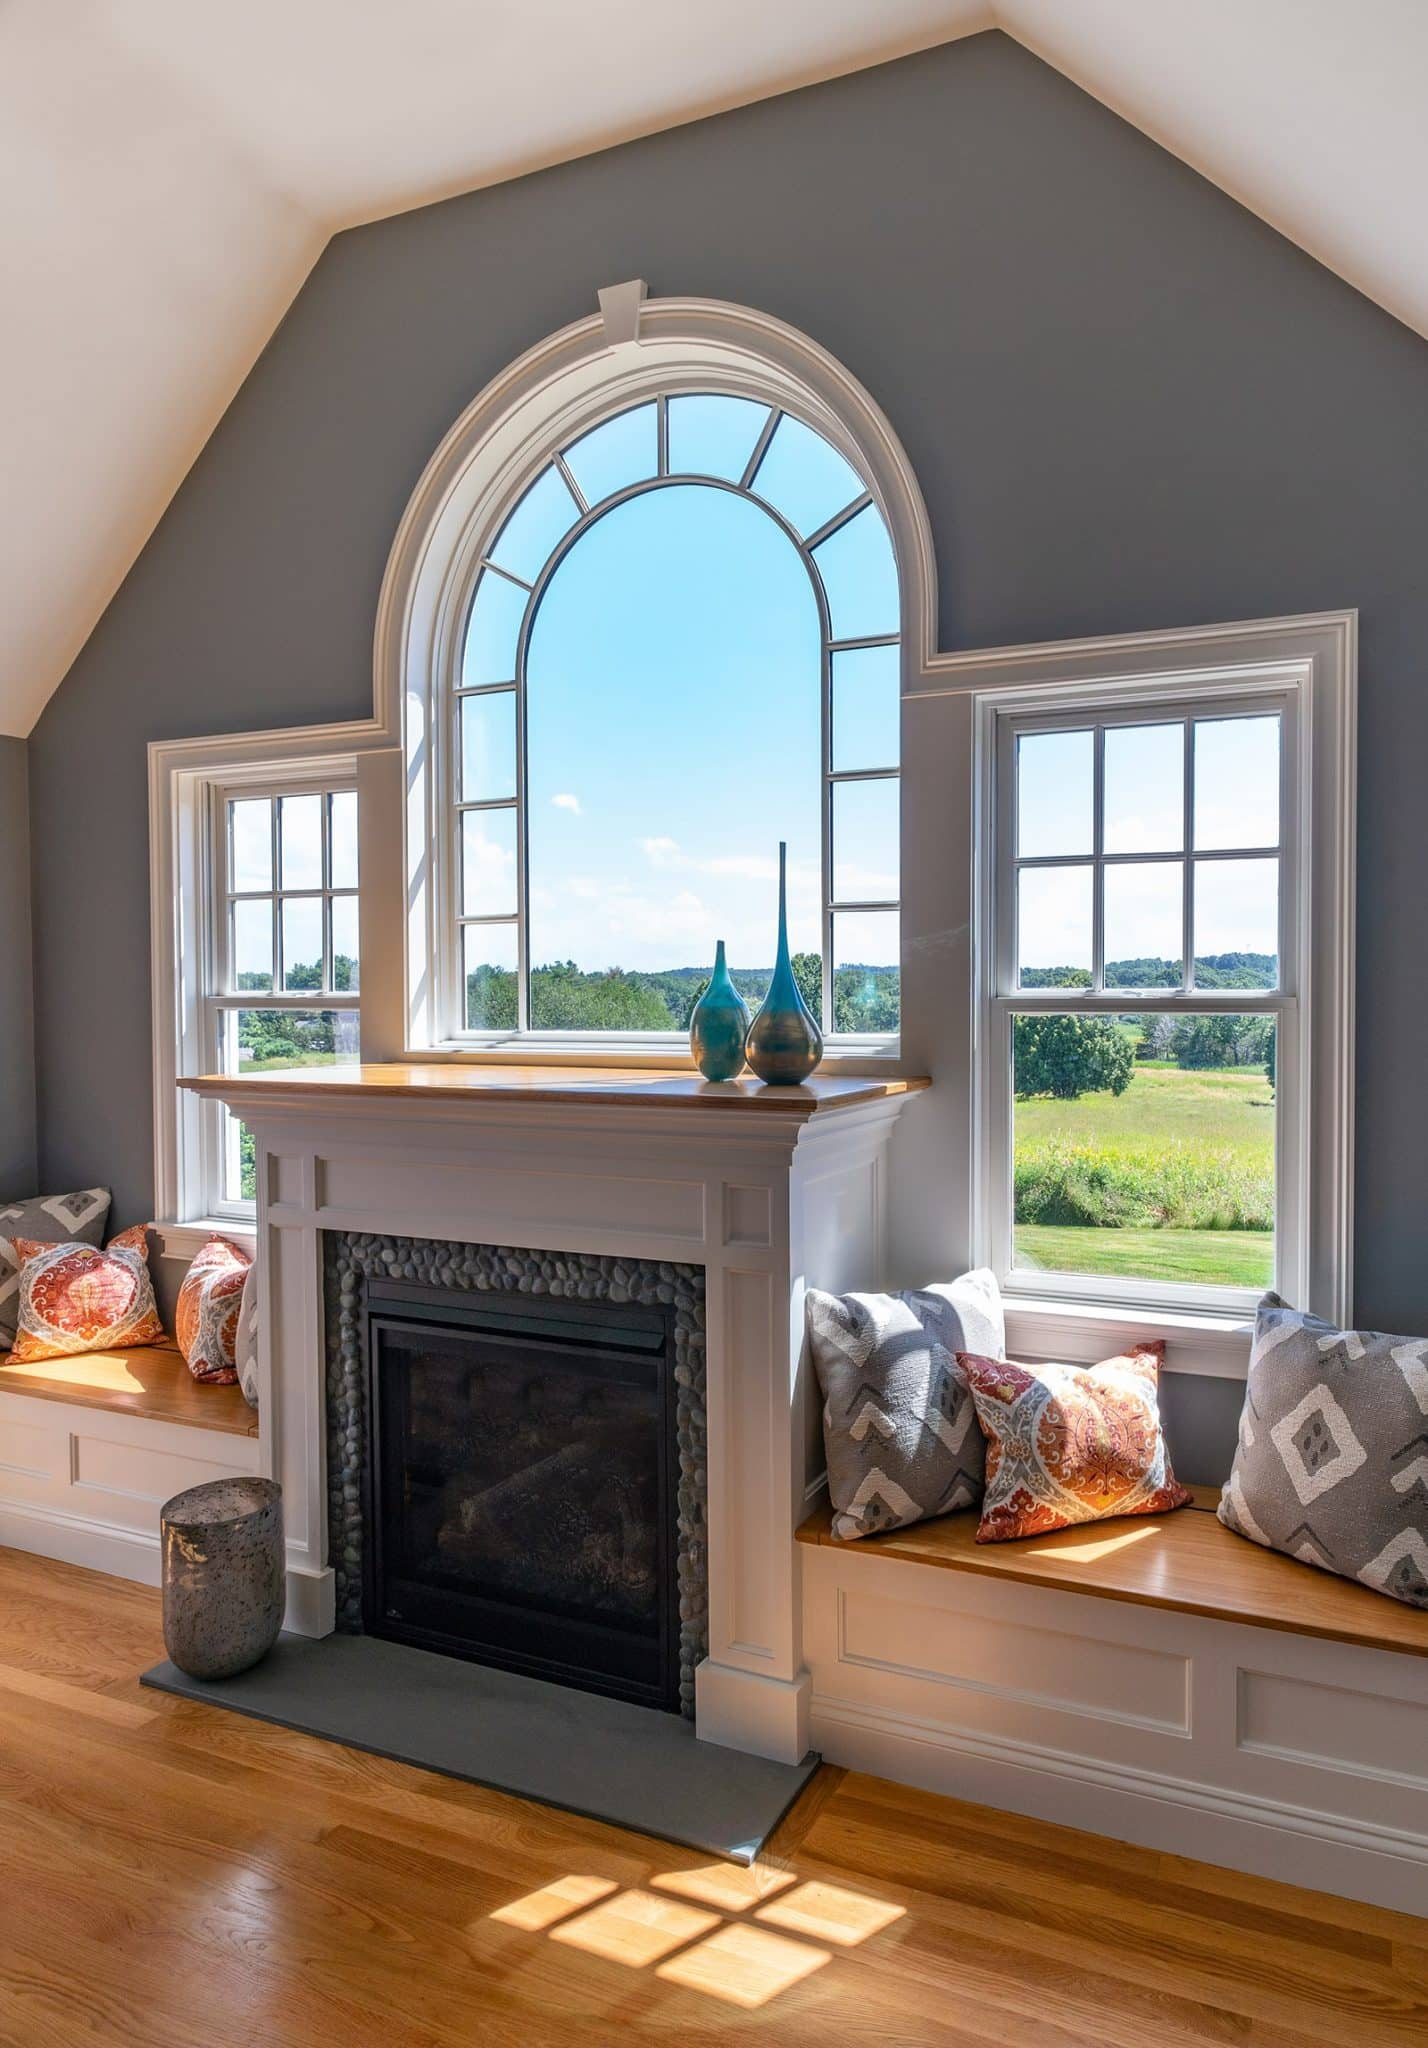 Cape Style Home Interiors Ipswich MA Living Room